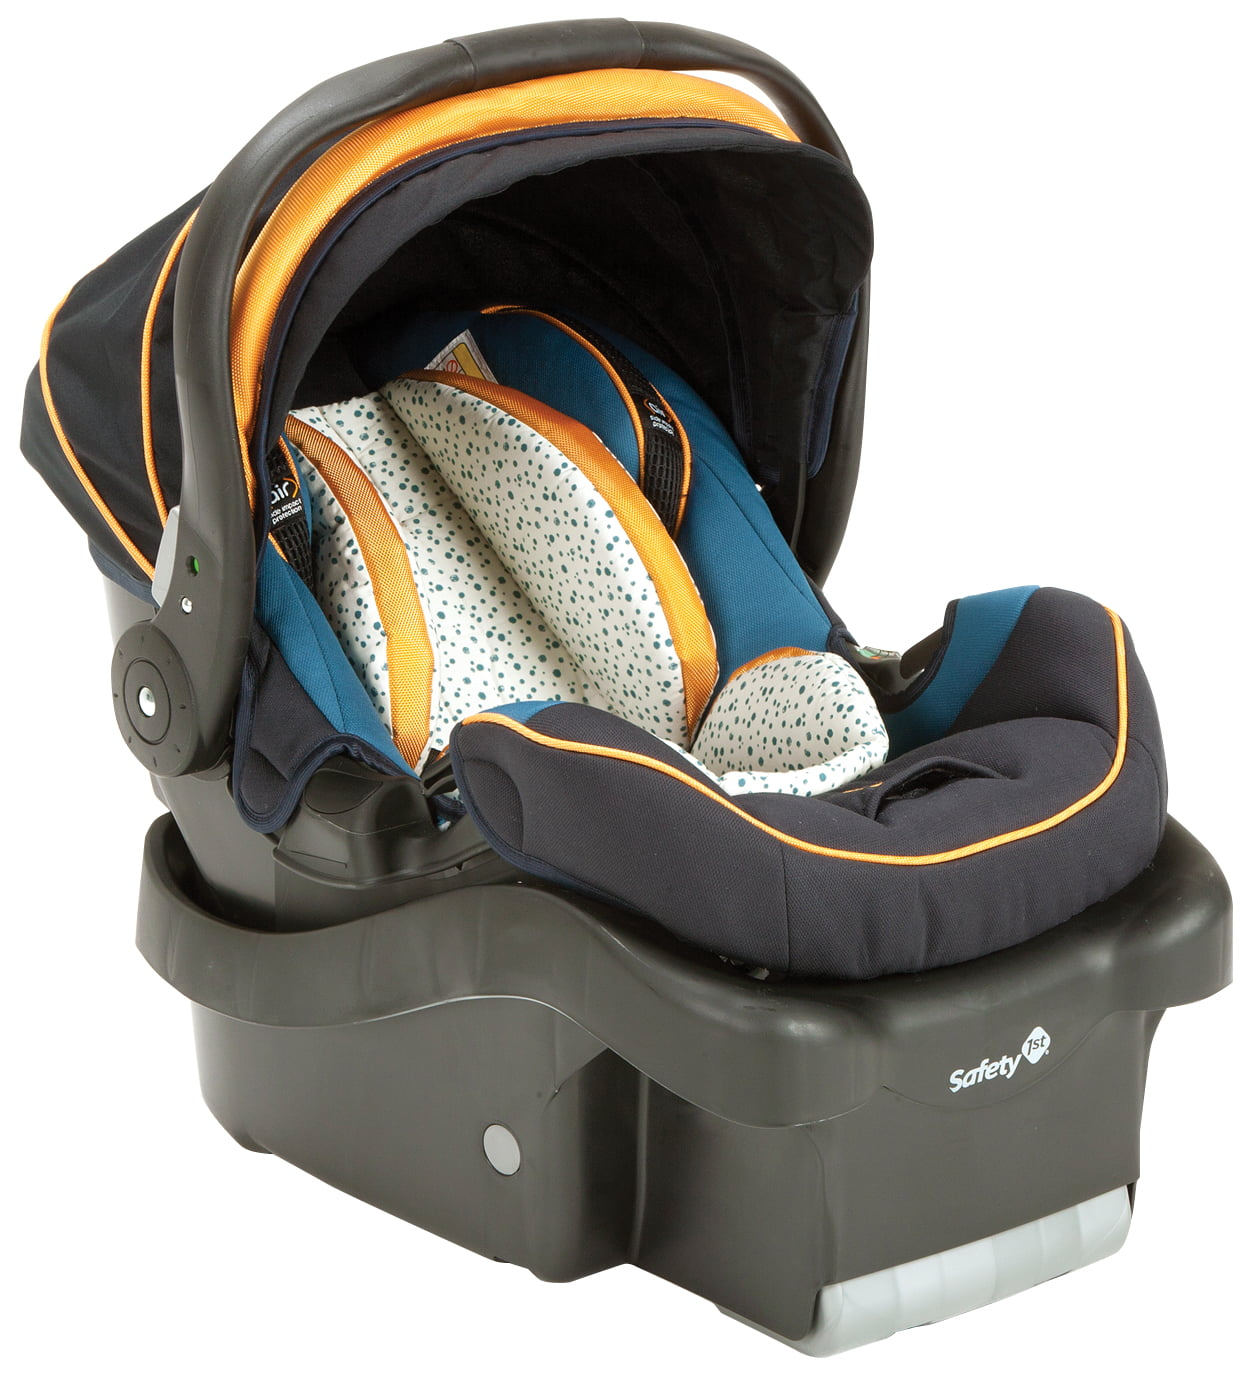 Safety 1st OnBoard 35 Air+ Infant Car Seat, Twist Of